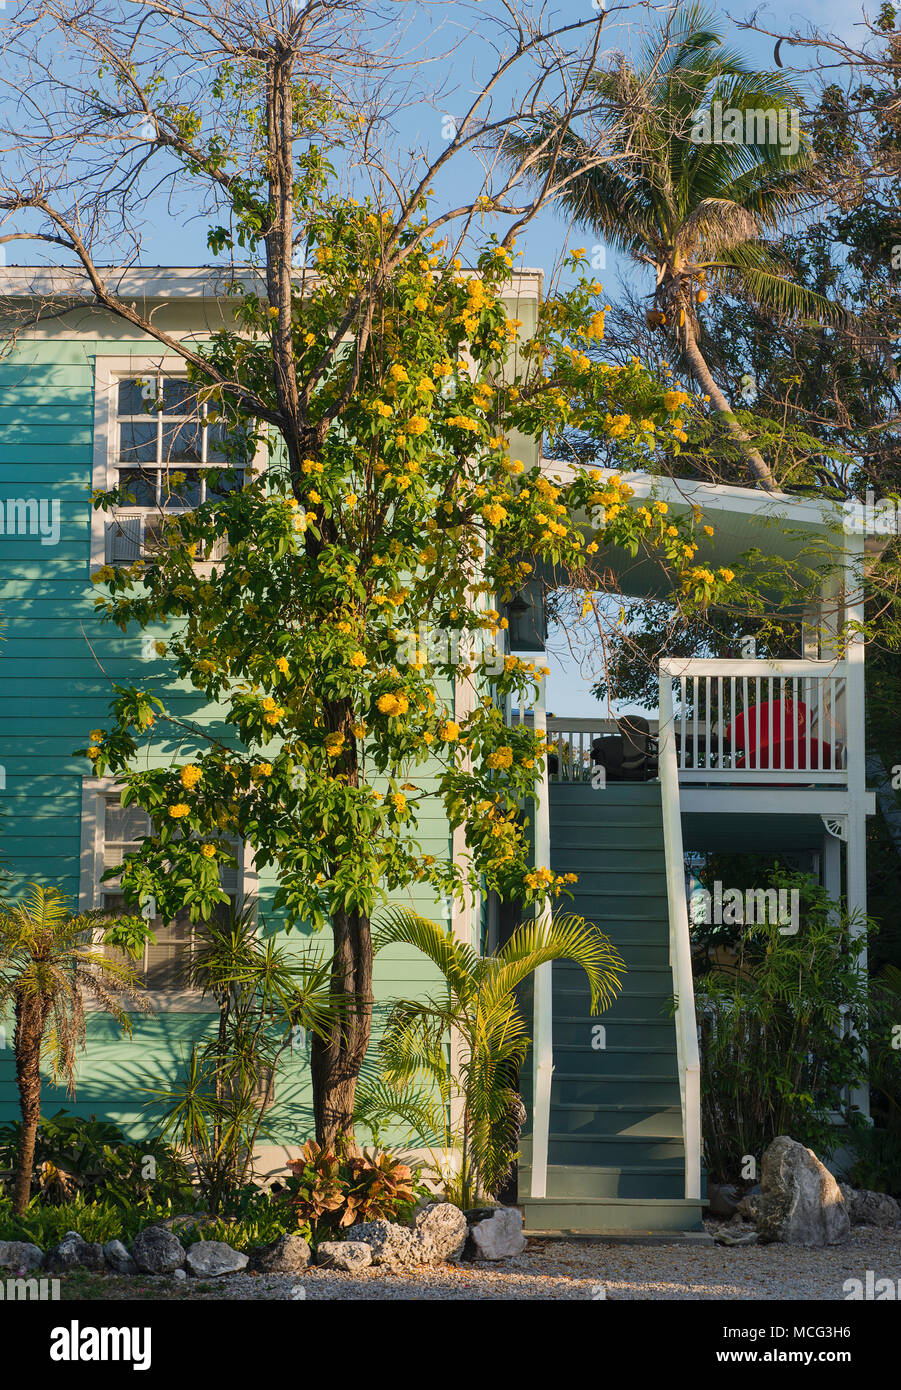 A Building With A Blooming Yellow Plant In Key West Florida Stock